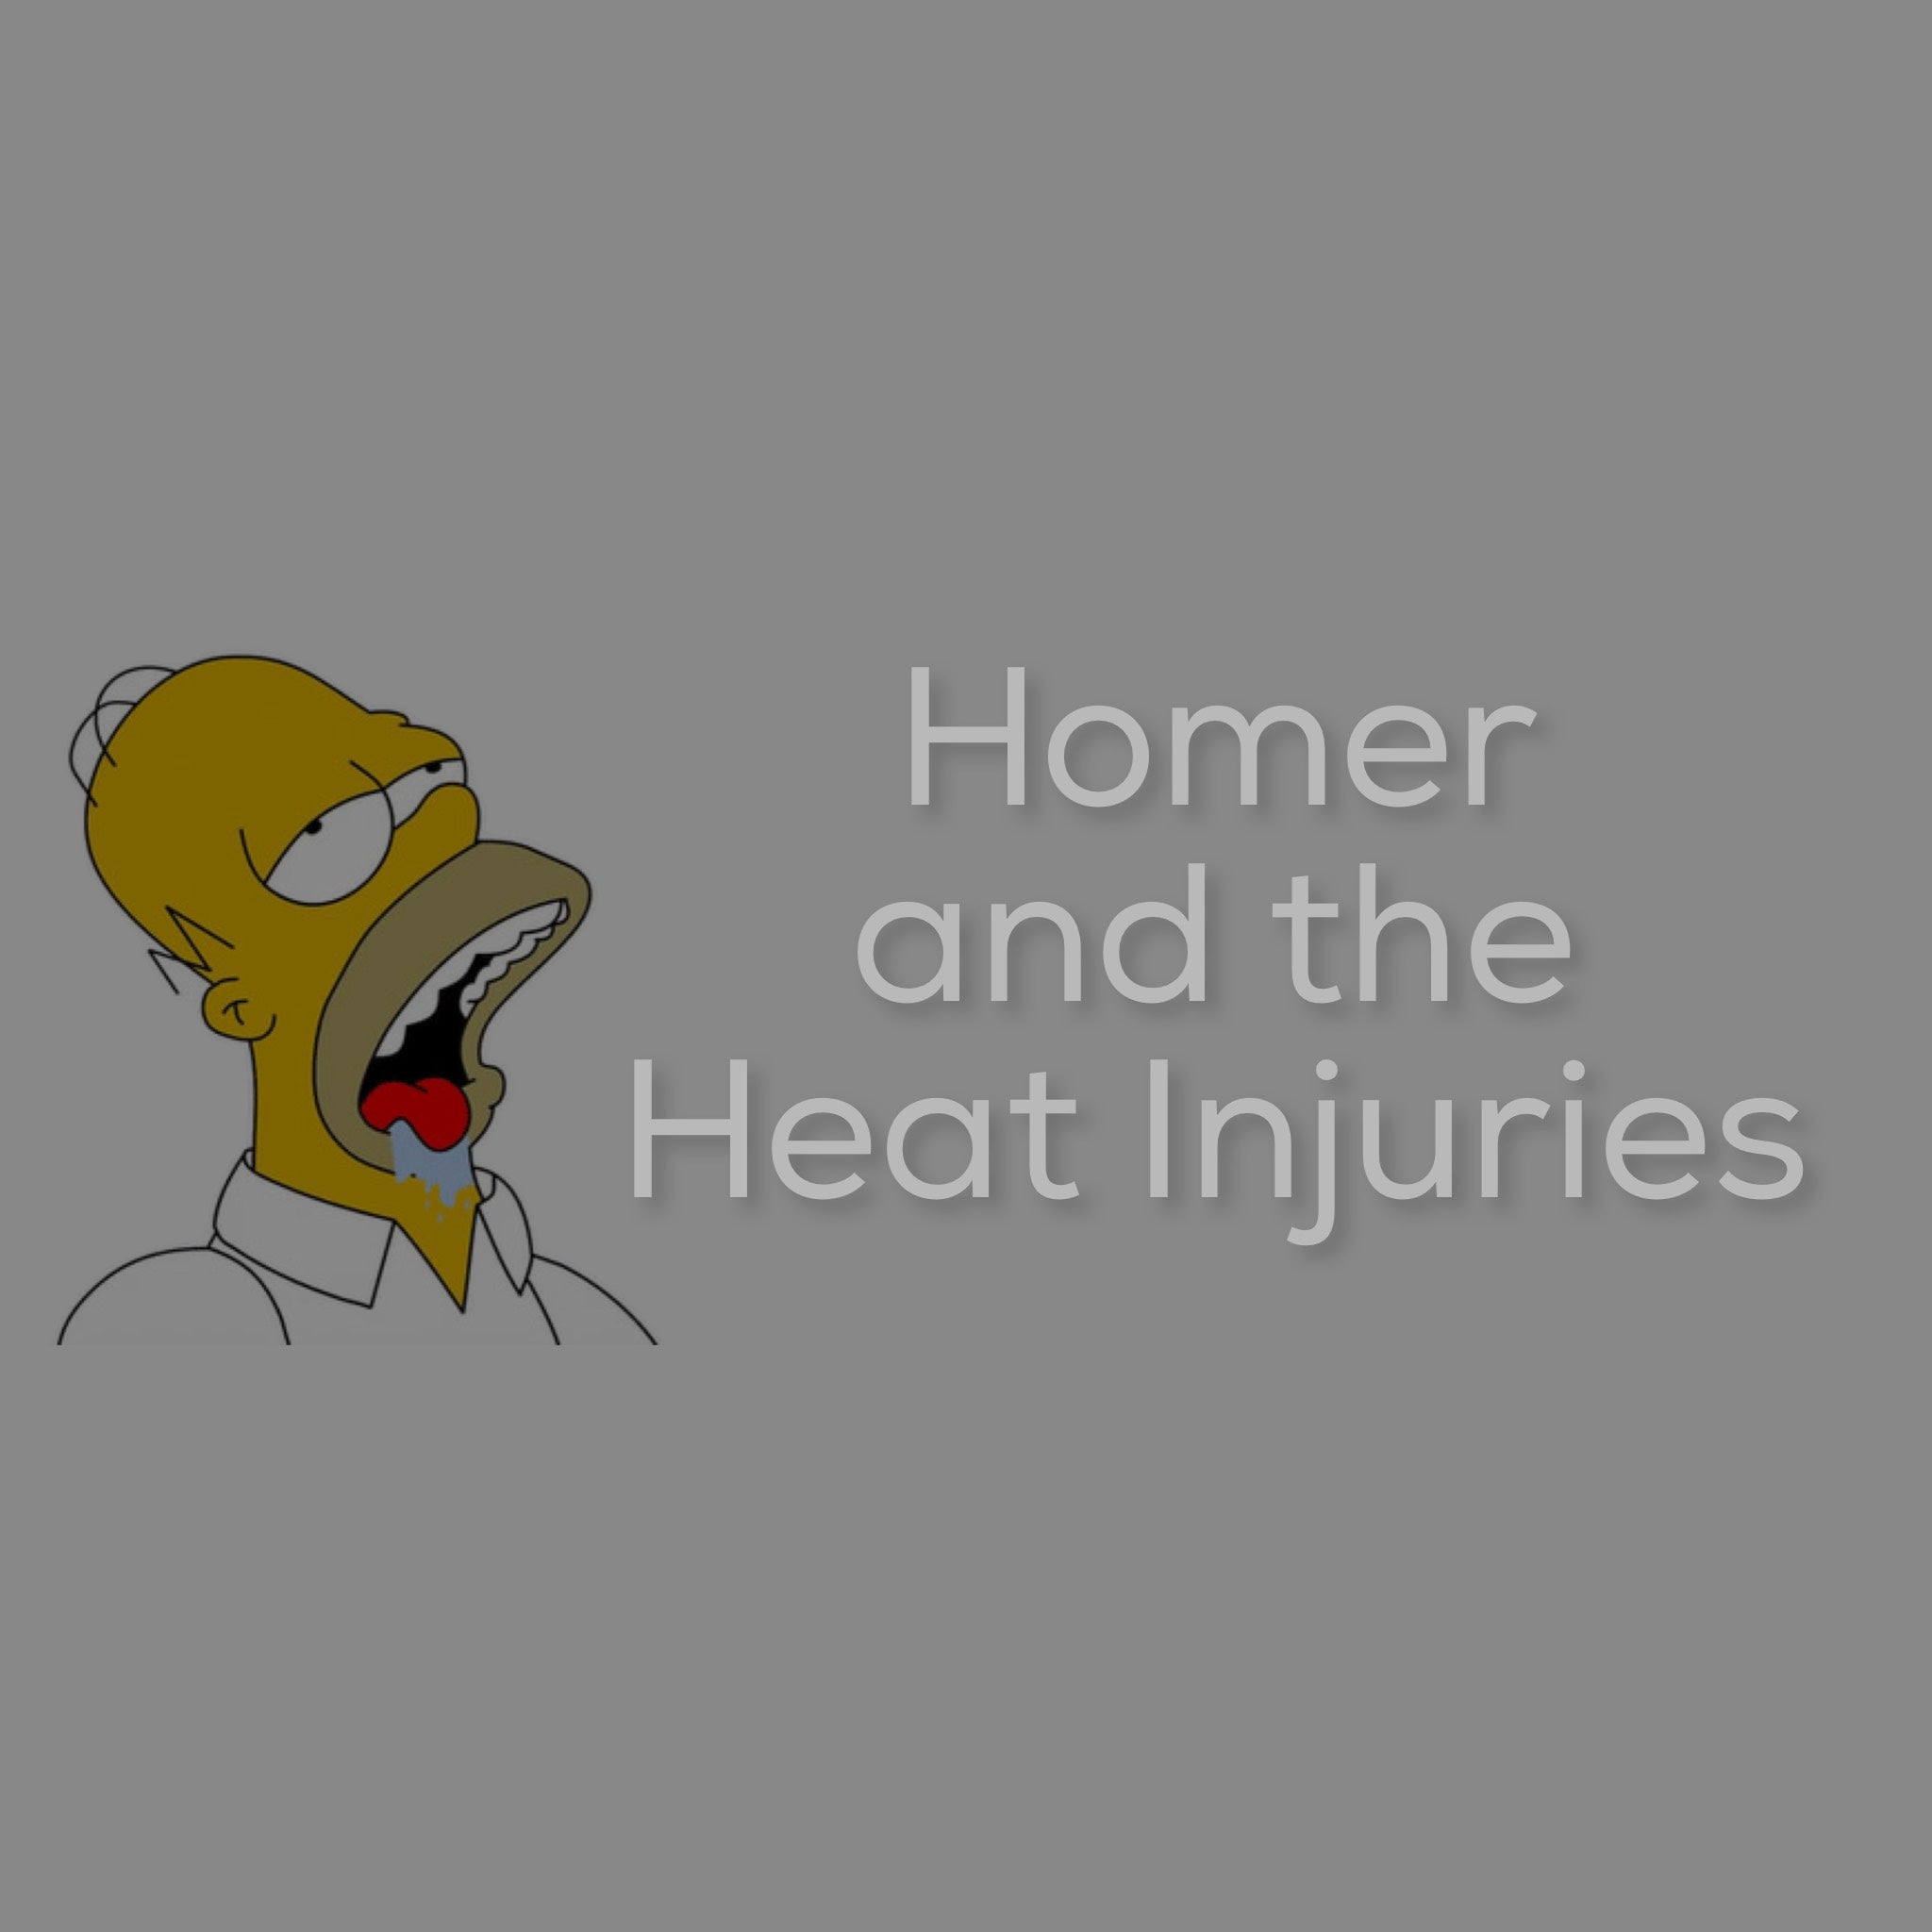 Homer and the Heat Injuries